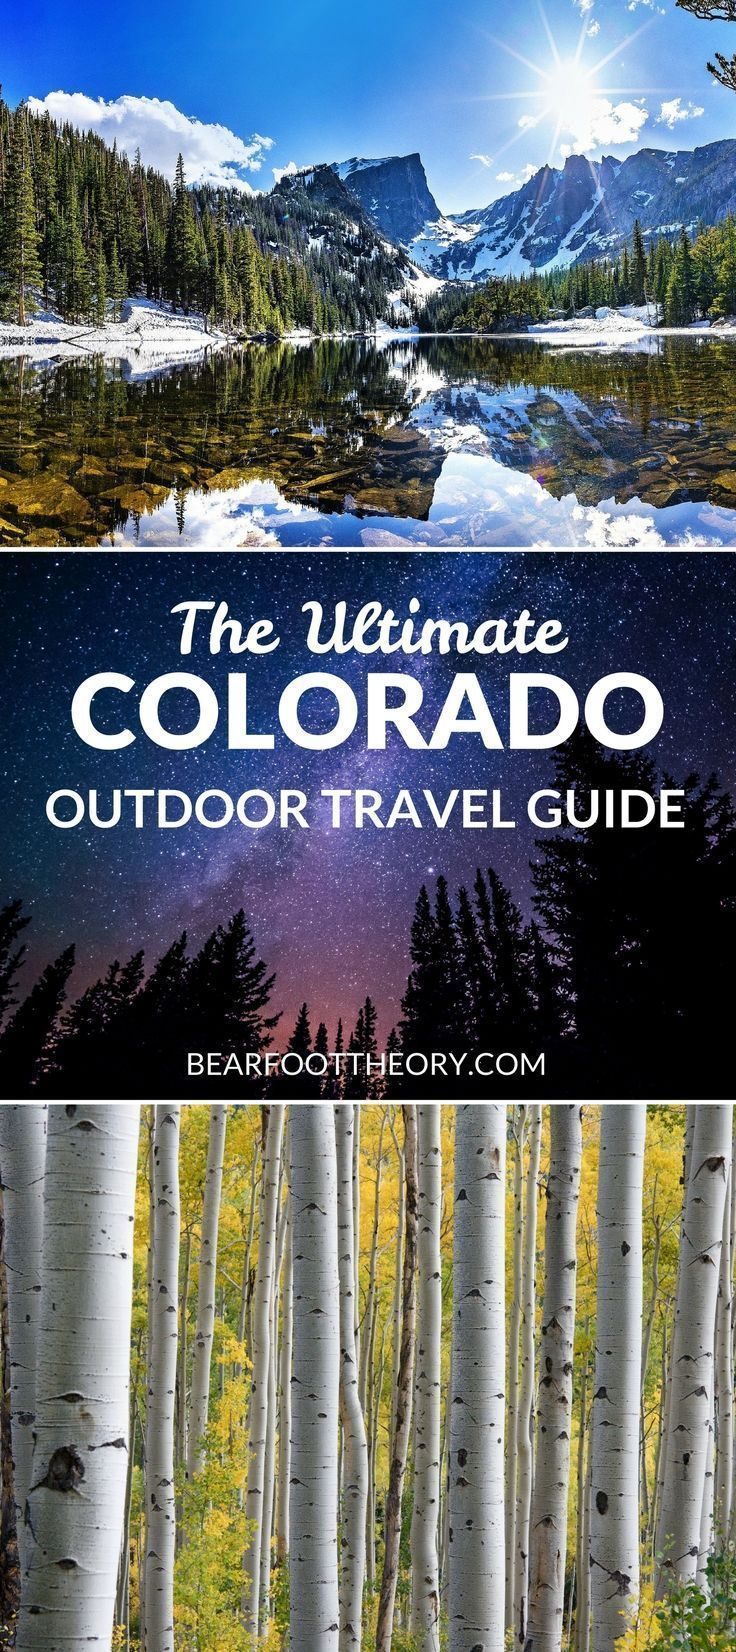 Plan an adventurous trip to colorado with our outdoor